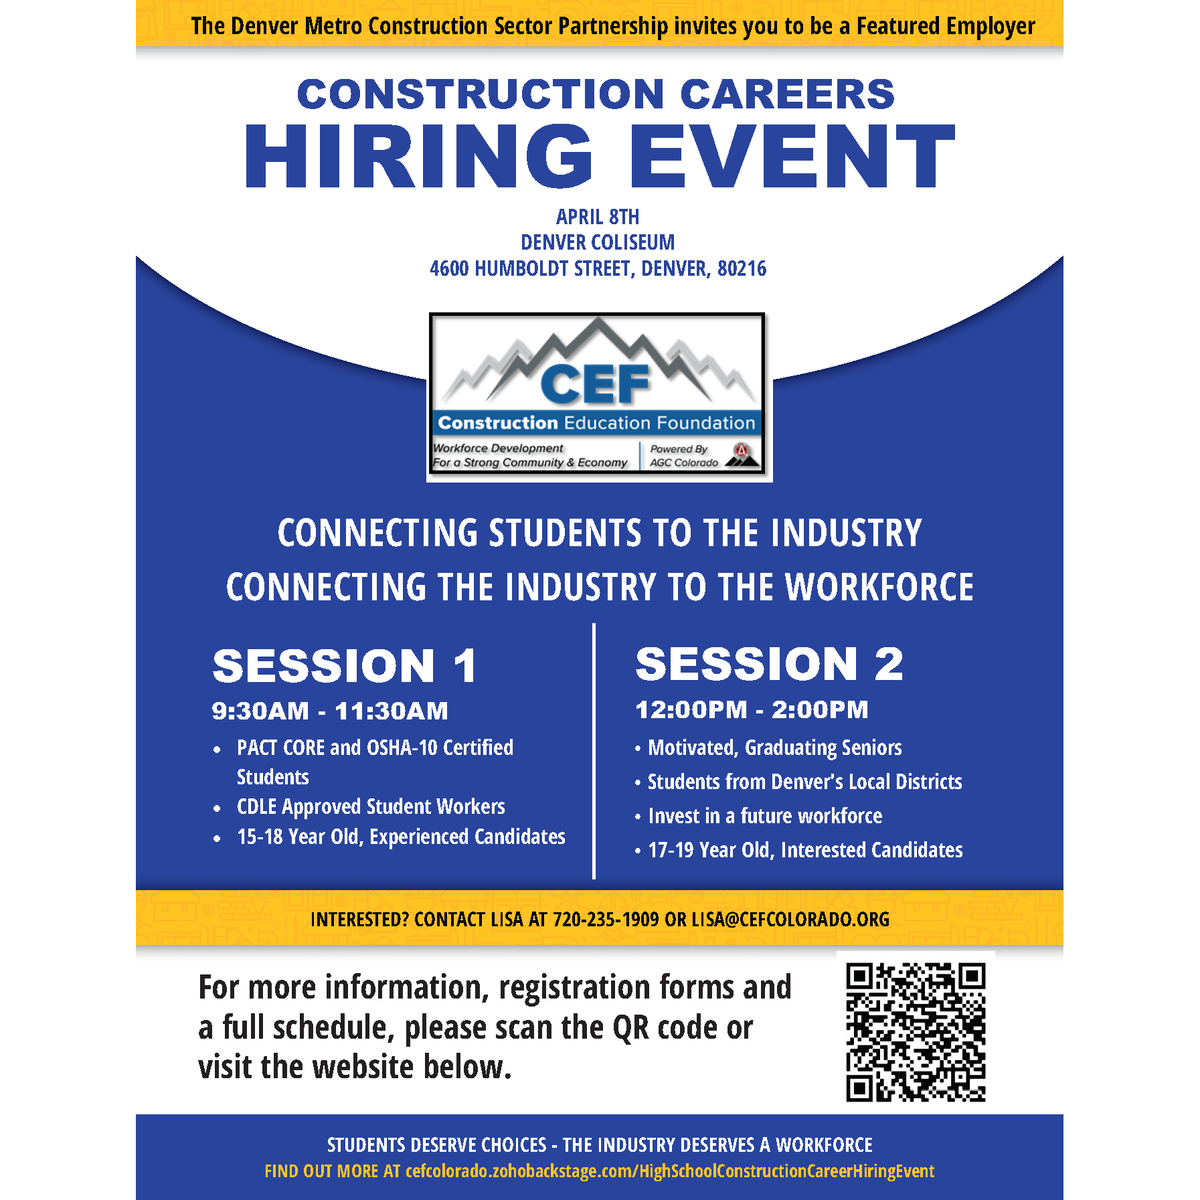 Agc Colorado En Twitter Have You Signed Up For The April 8 High School Construction Career Hiring Event Https T Co G2mxcagjmy Joinus Denver Coliseum Speak To Hs Students From Denver S Local Schools About Summer